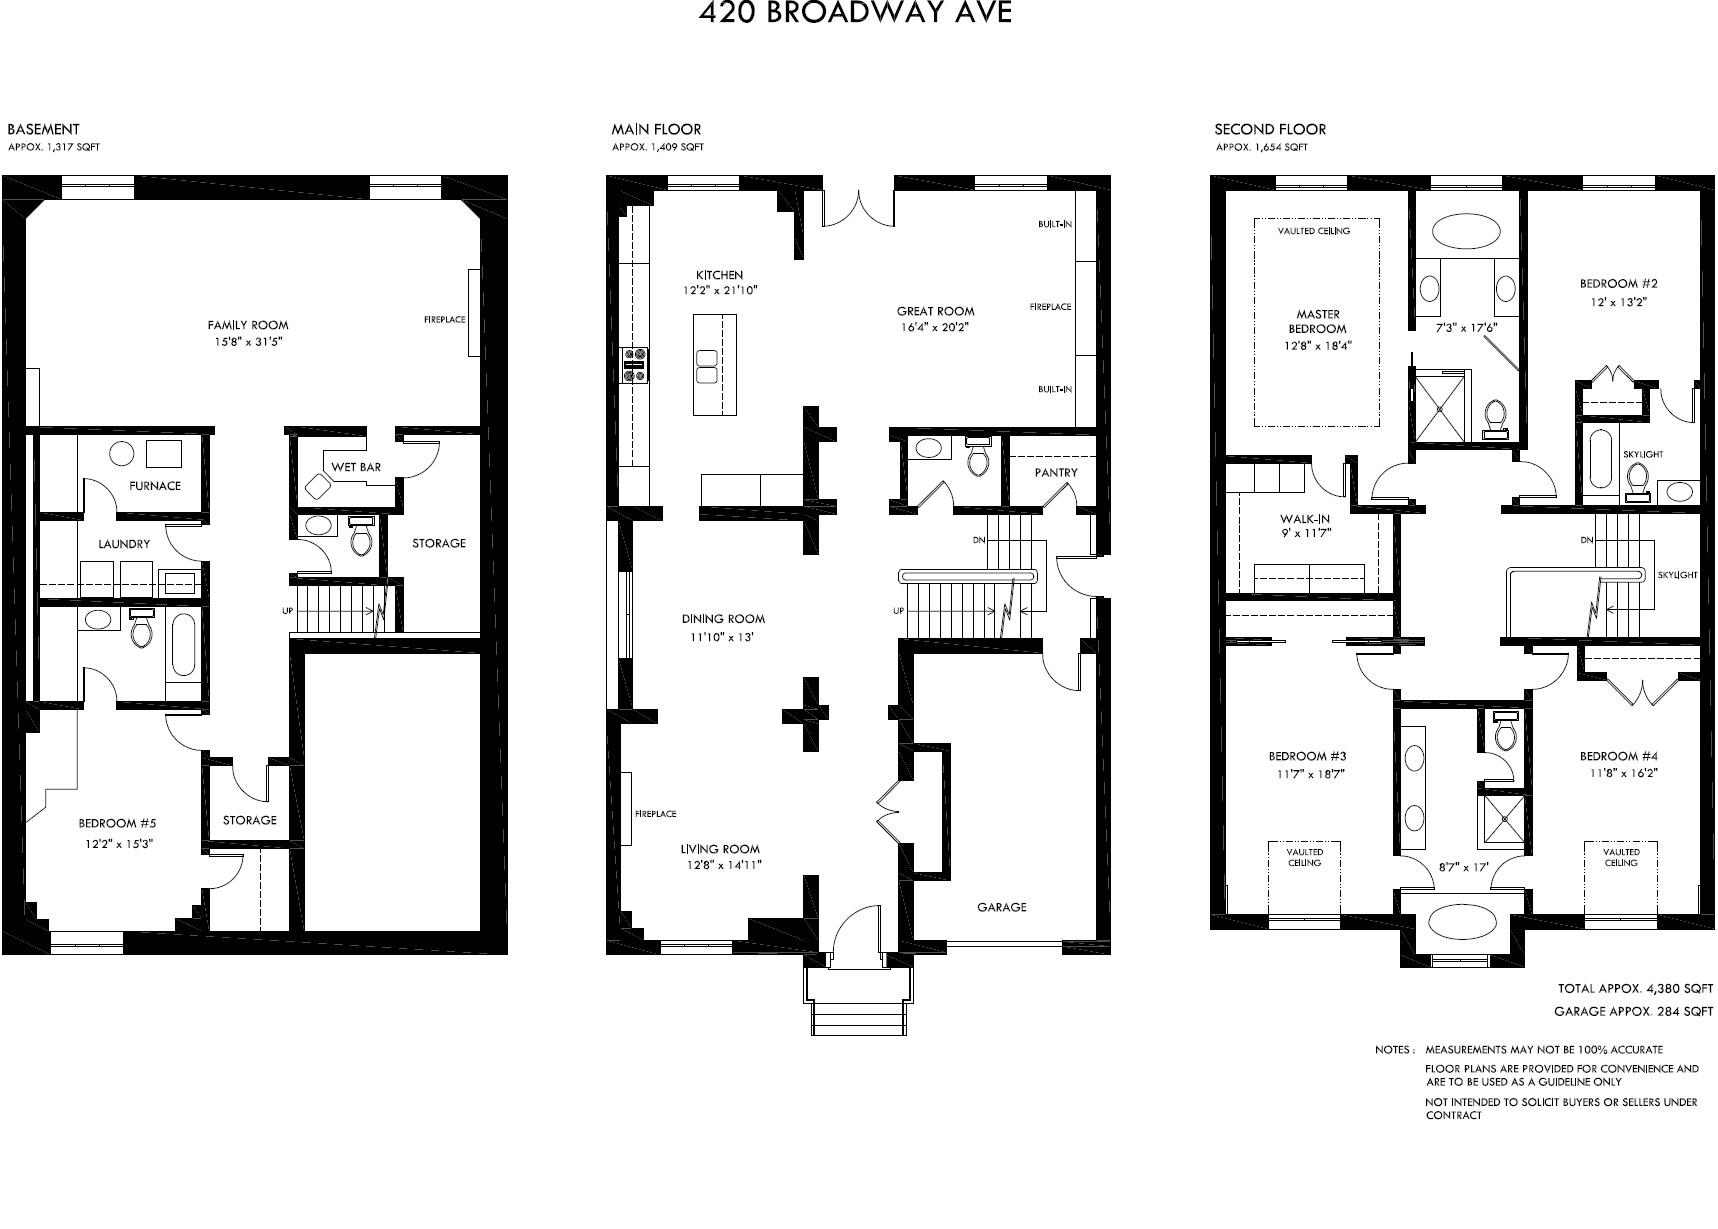 Toronto House Plans 28 Images Floor Plan 420 Broadway